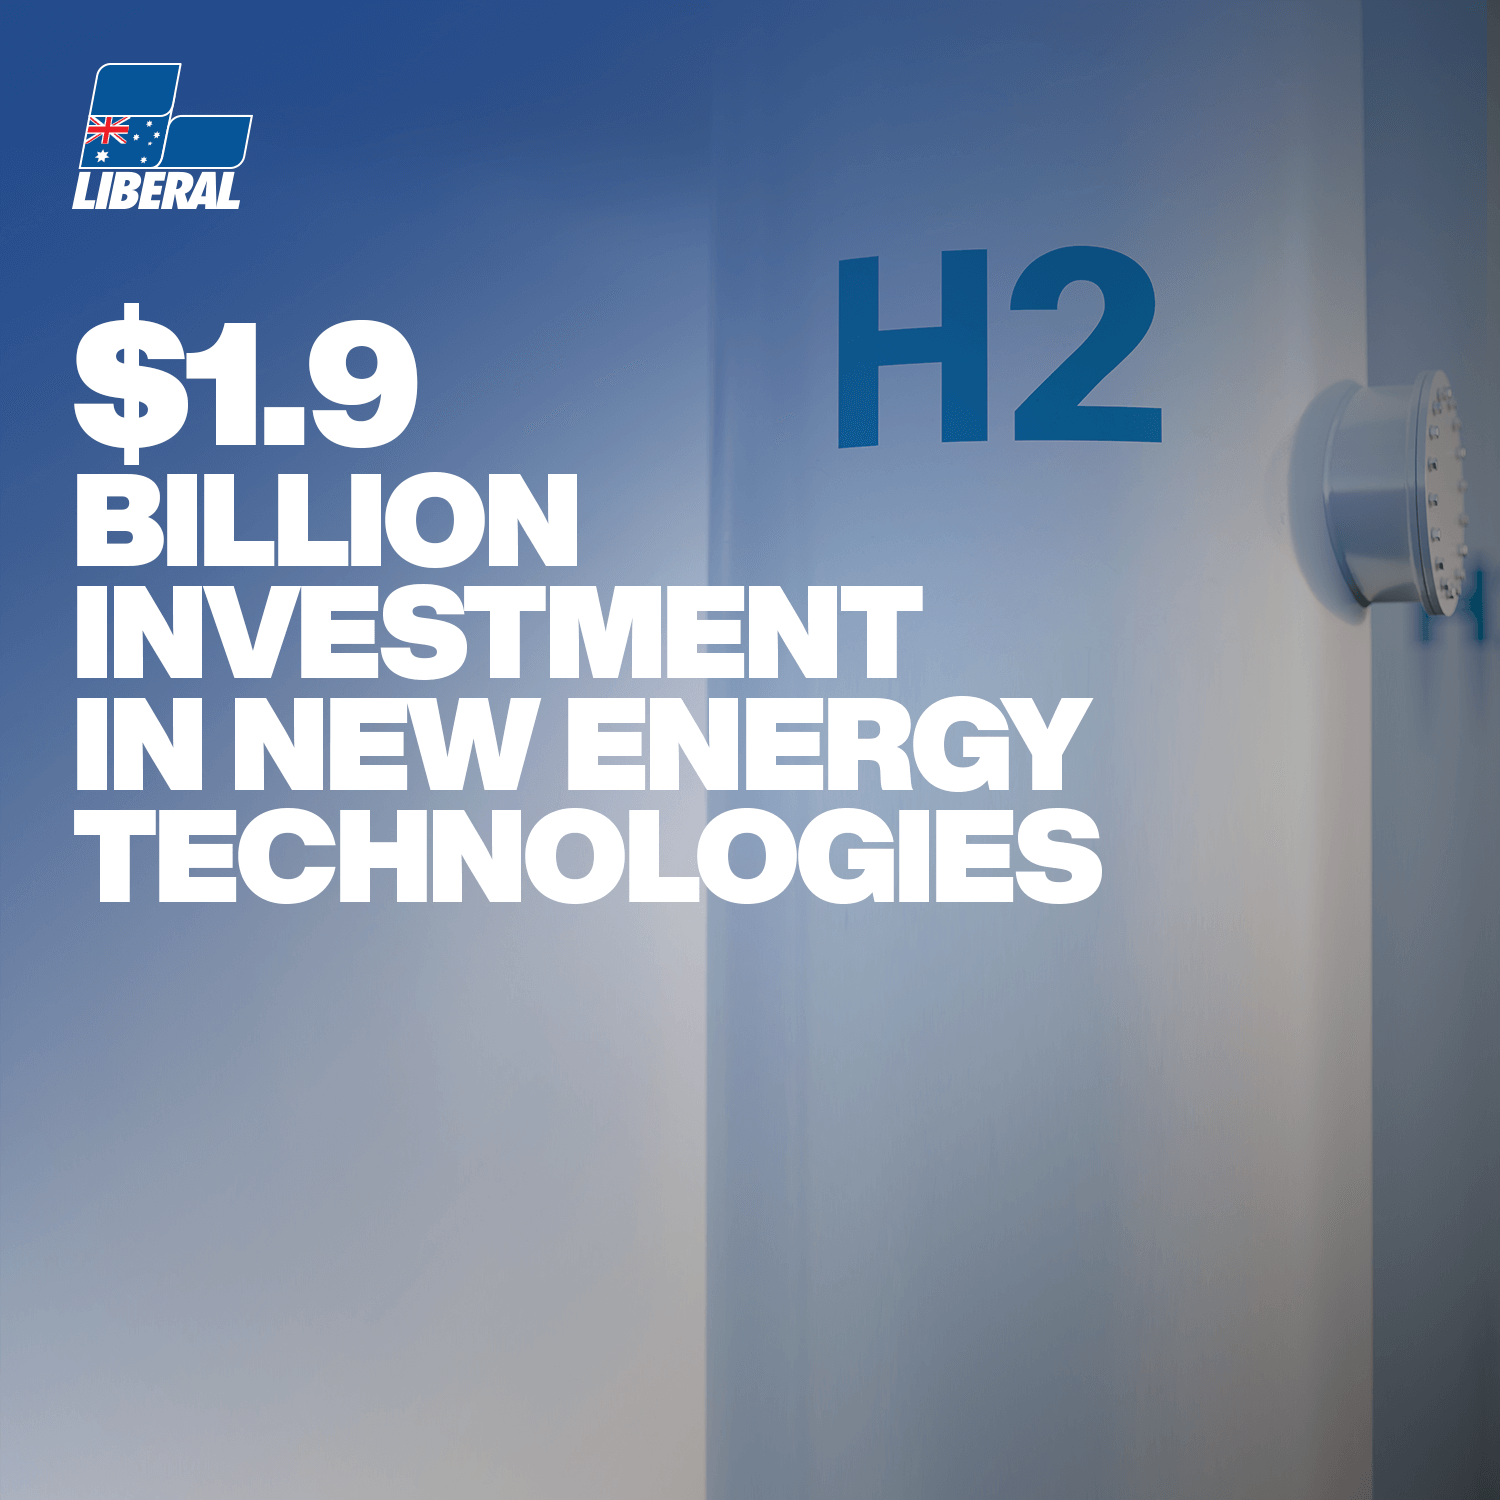 Investment in New Energy Technologies